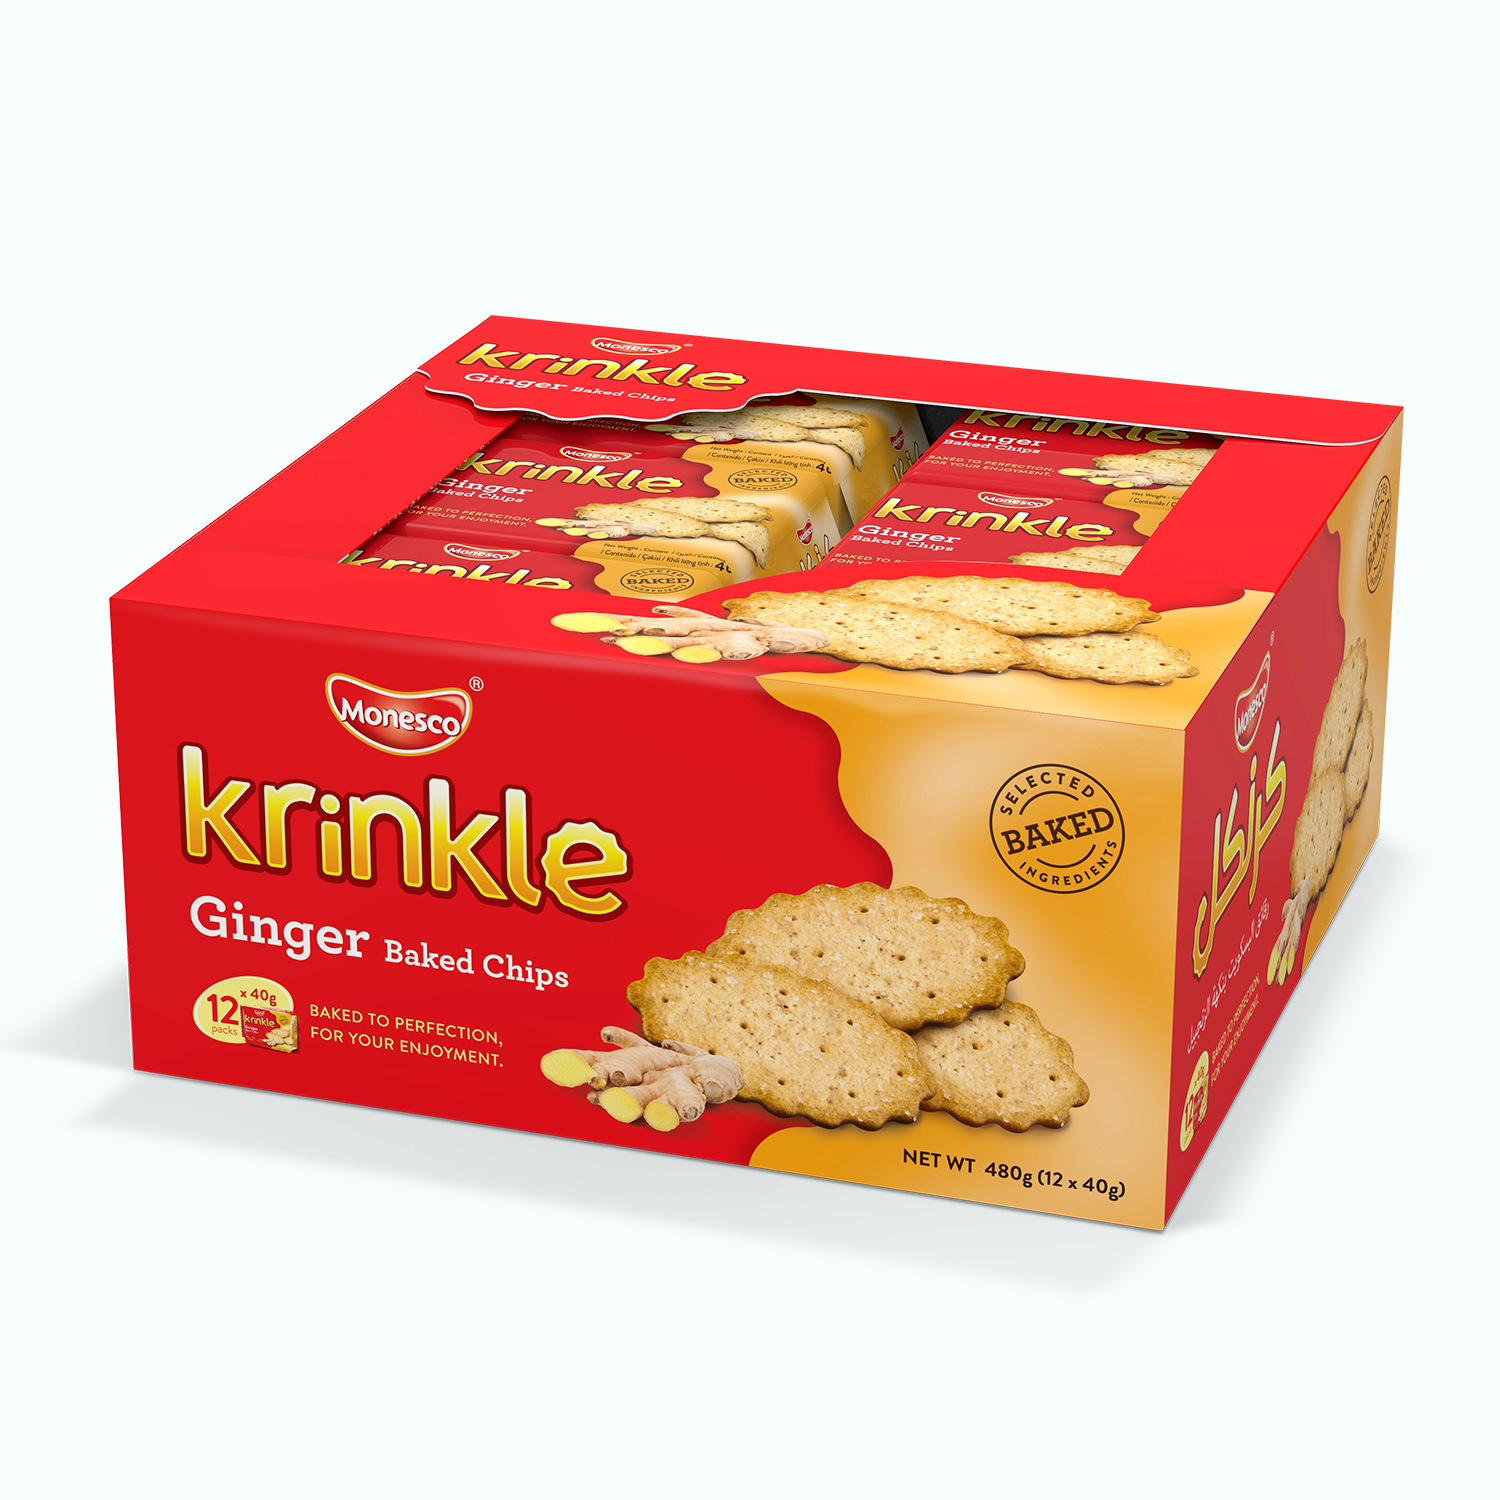 Monesco Krinkle Ginger Baked Chips (12 x 40g)